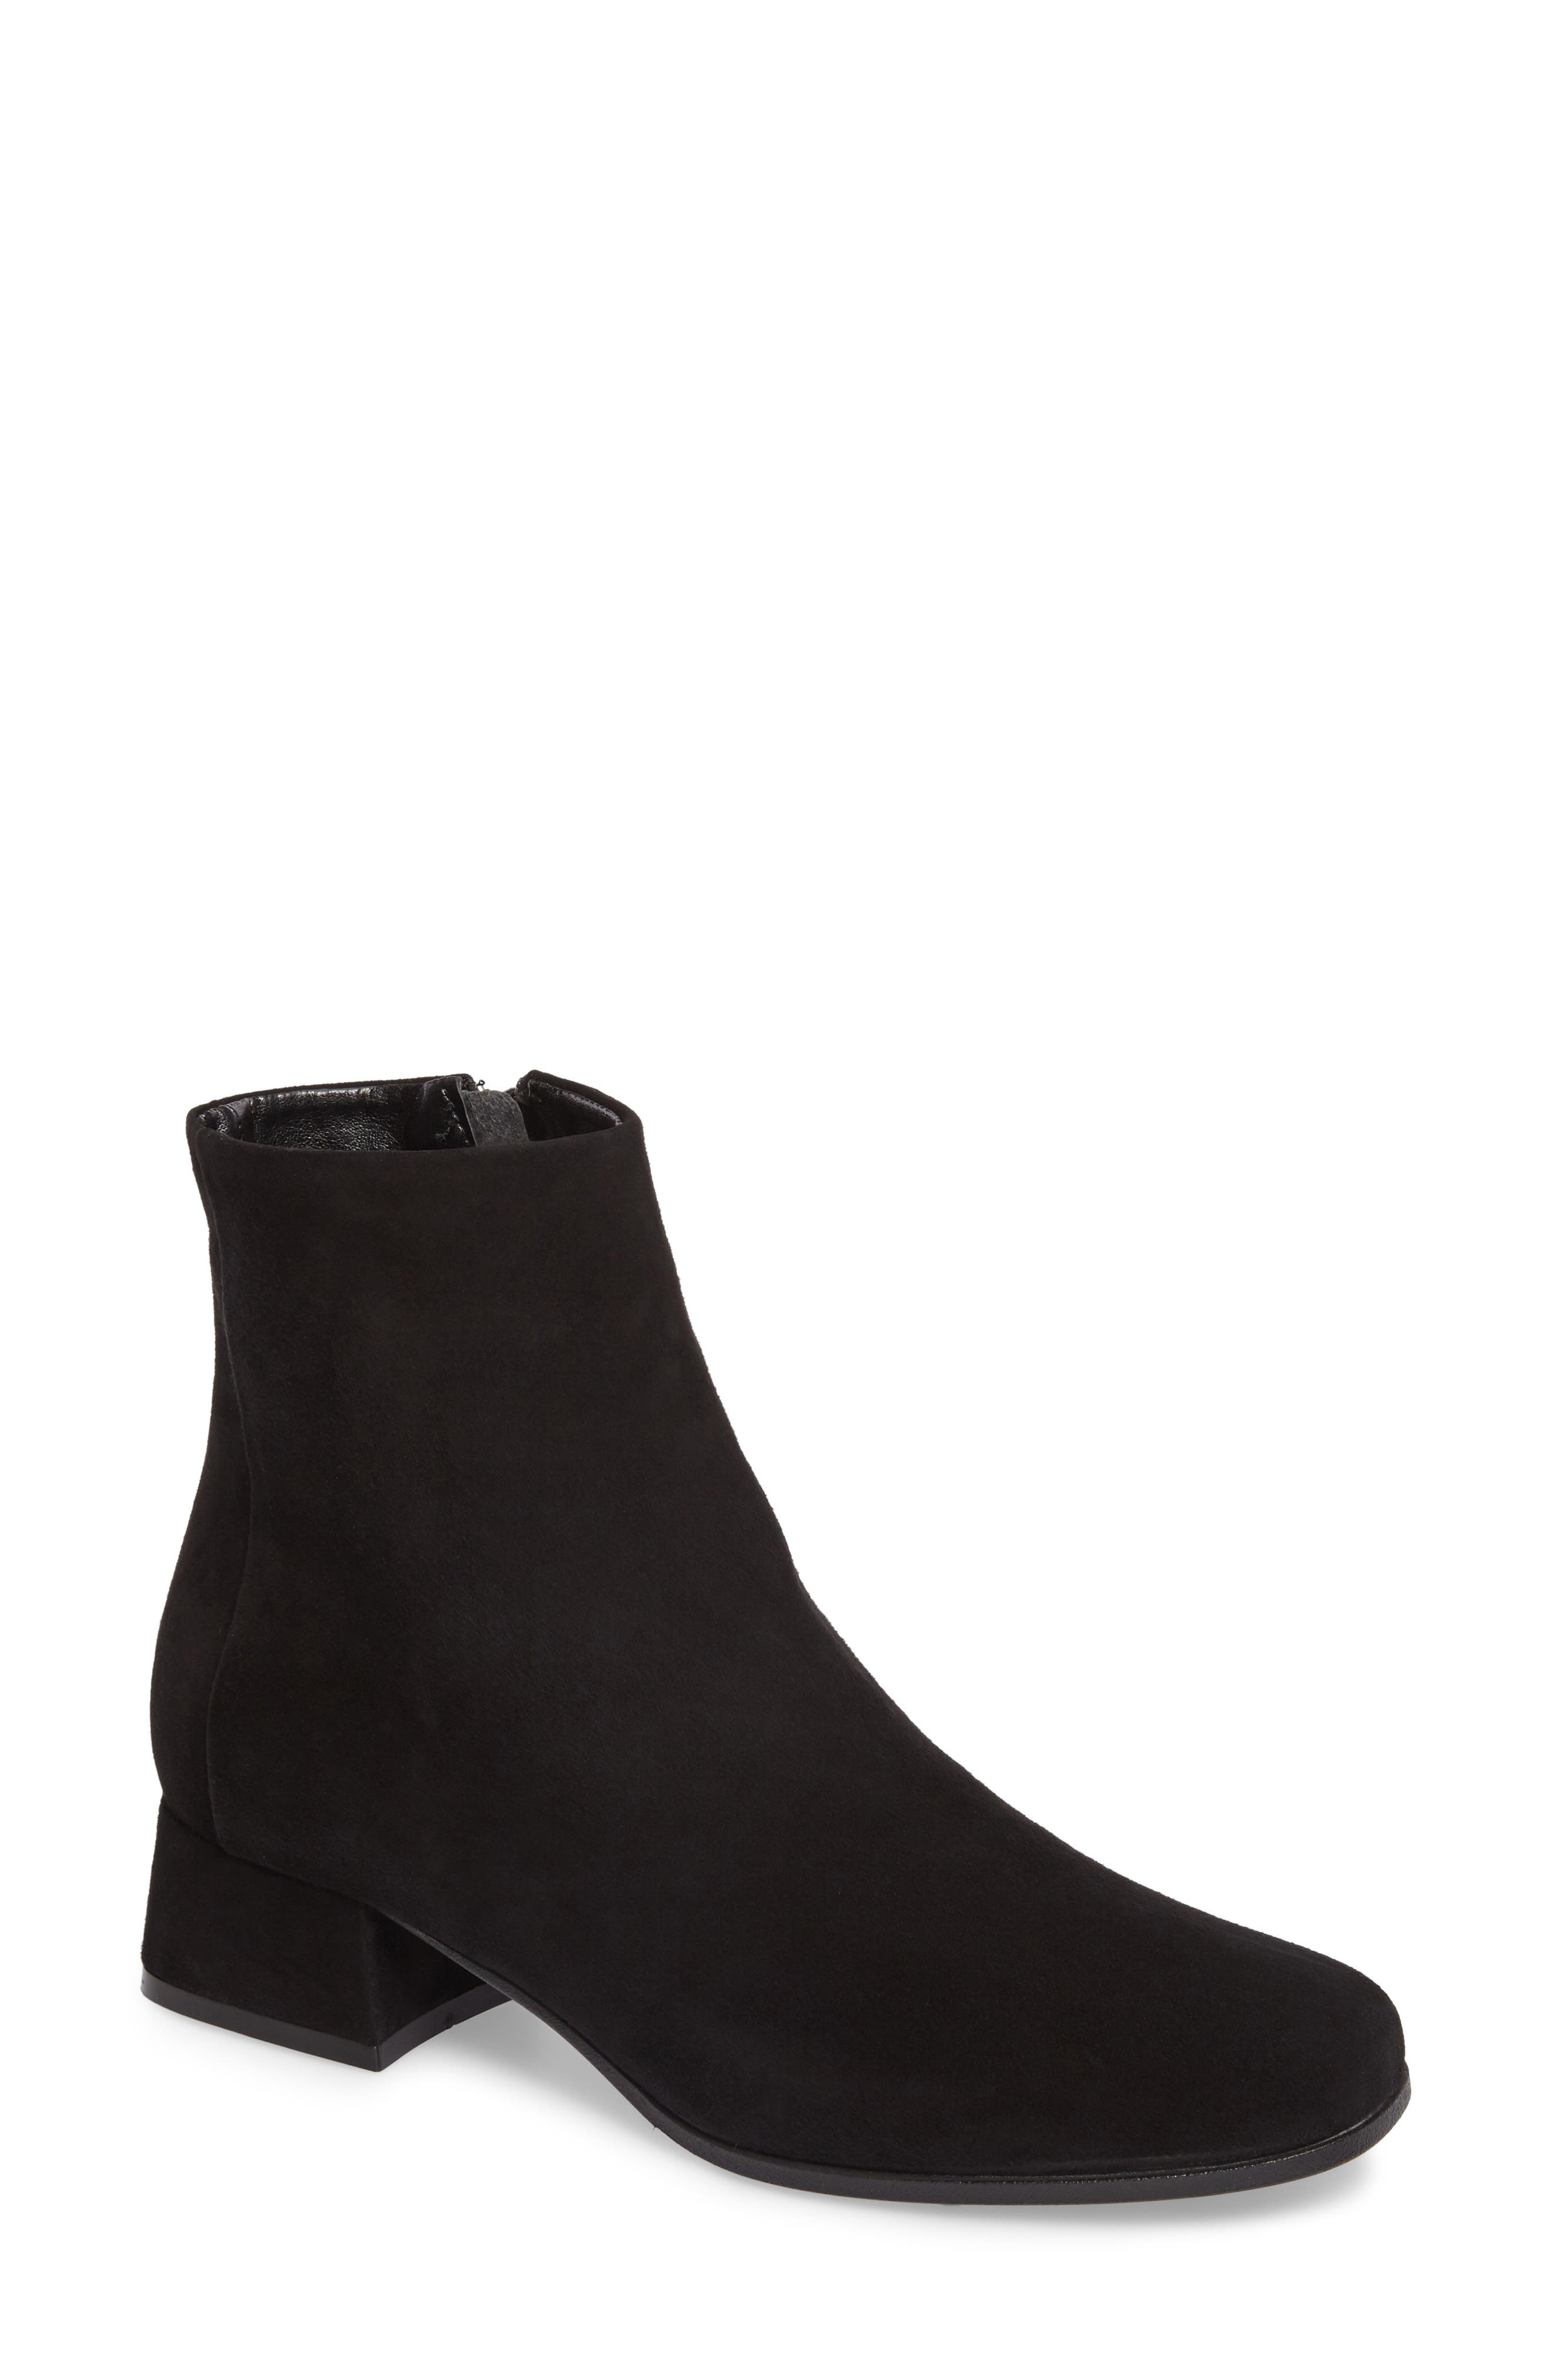 Bessie Square Toe Bootie,                             Main thumbnail 1, color,                             002